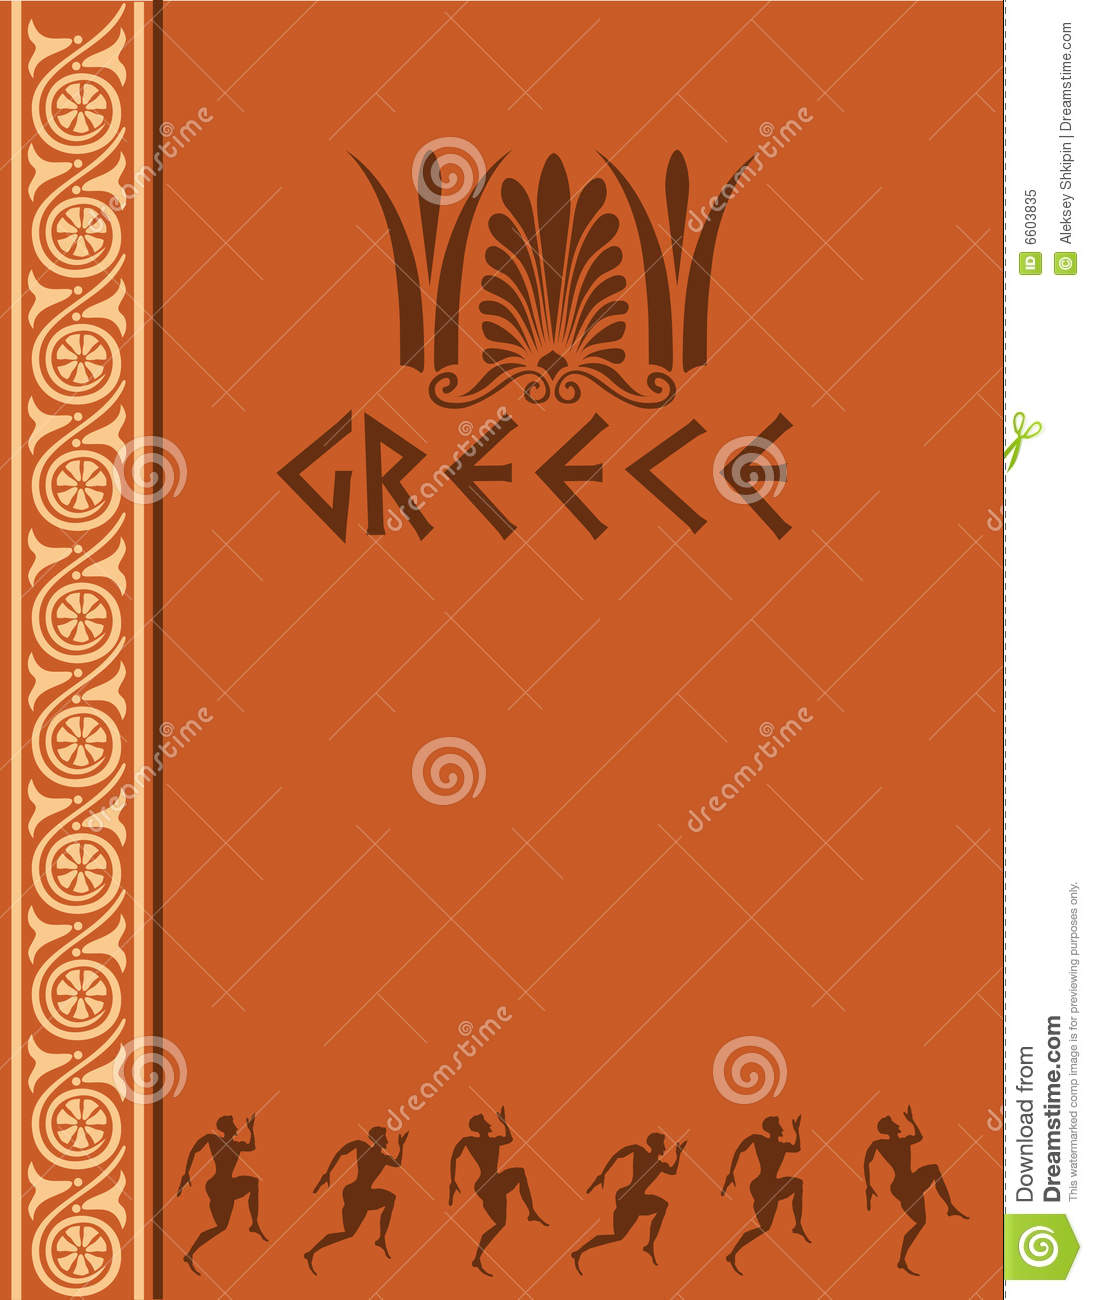 Book Cover Art Royalties : Ancient greek book cover royalty free stock photo image